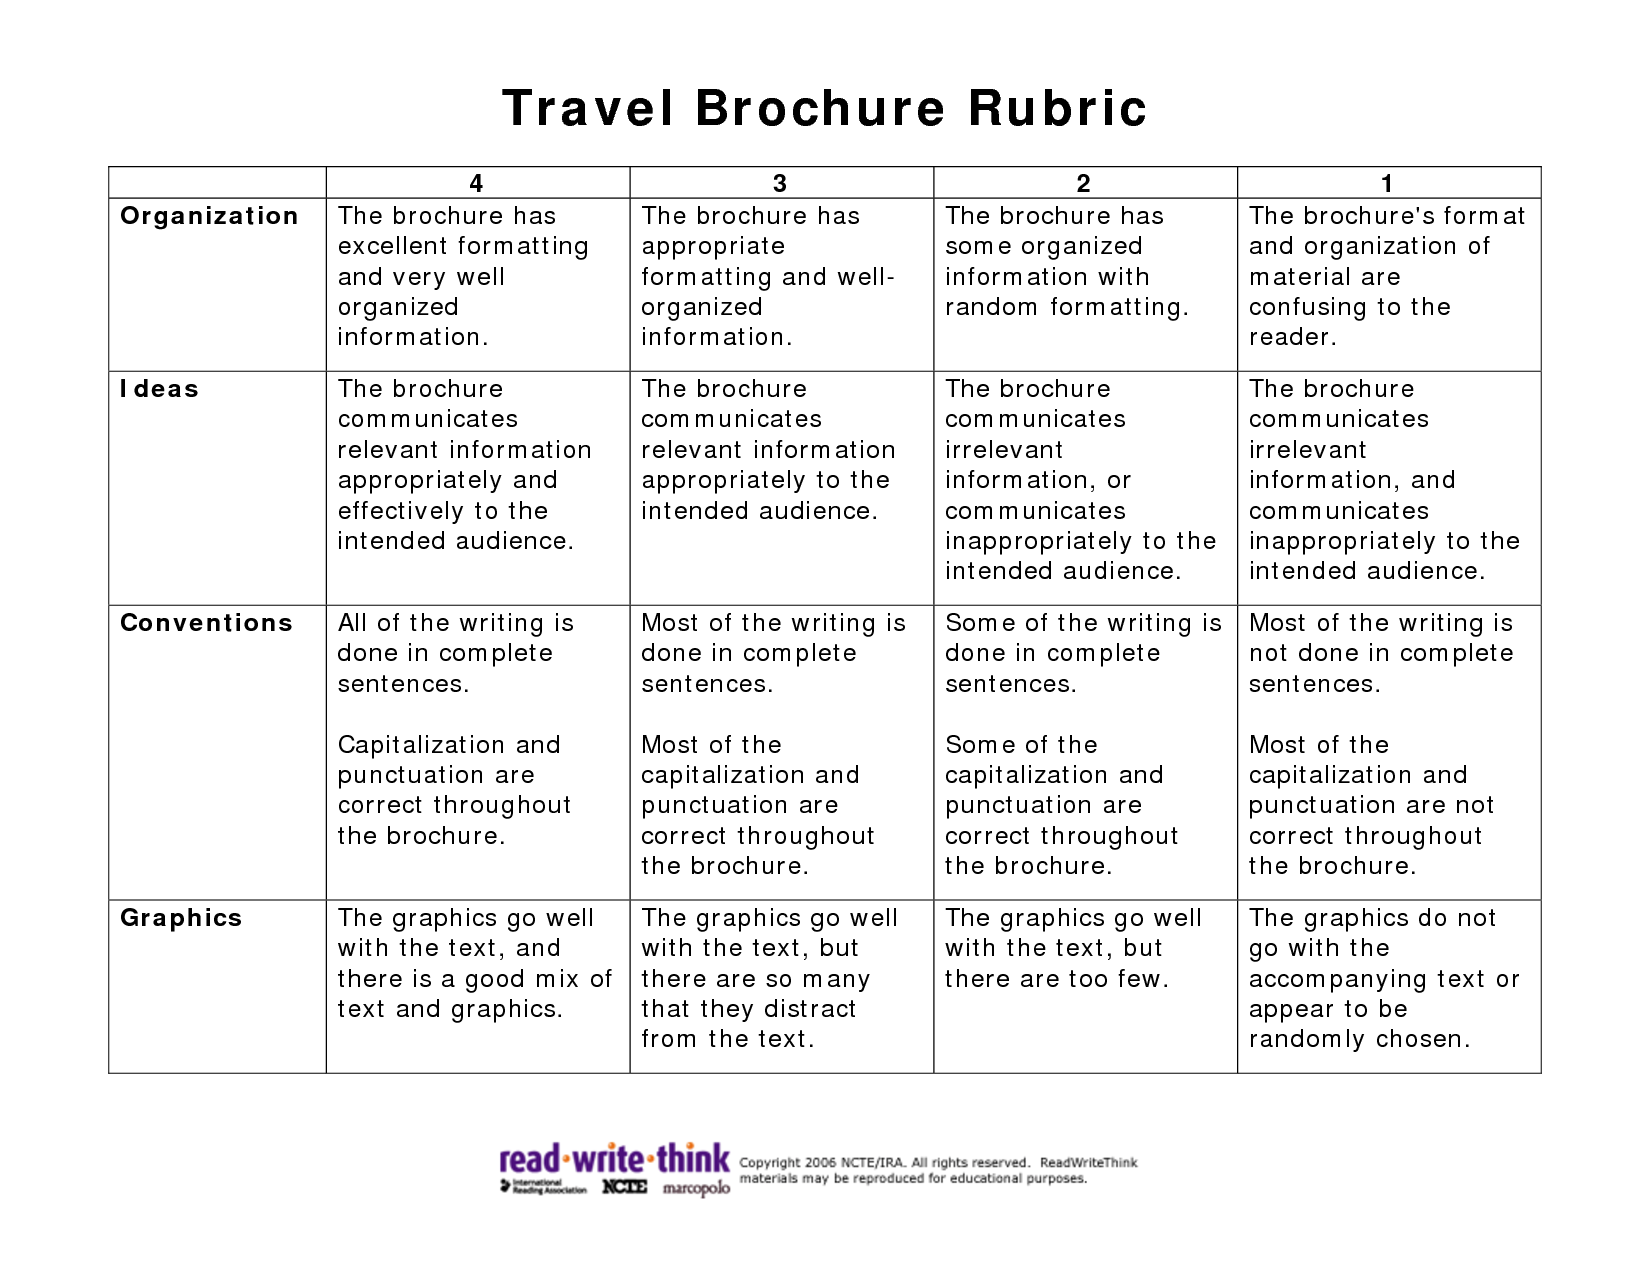 Travel brochure rubric pdf picture teaching pinterest travel travel brochure rubric pdf picture fandeluxe